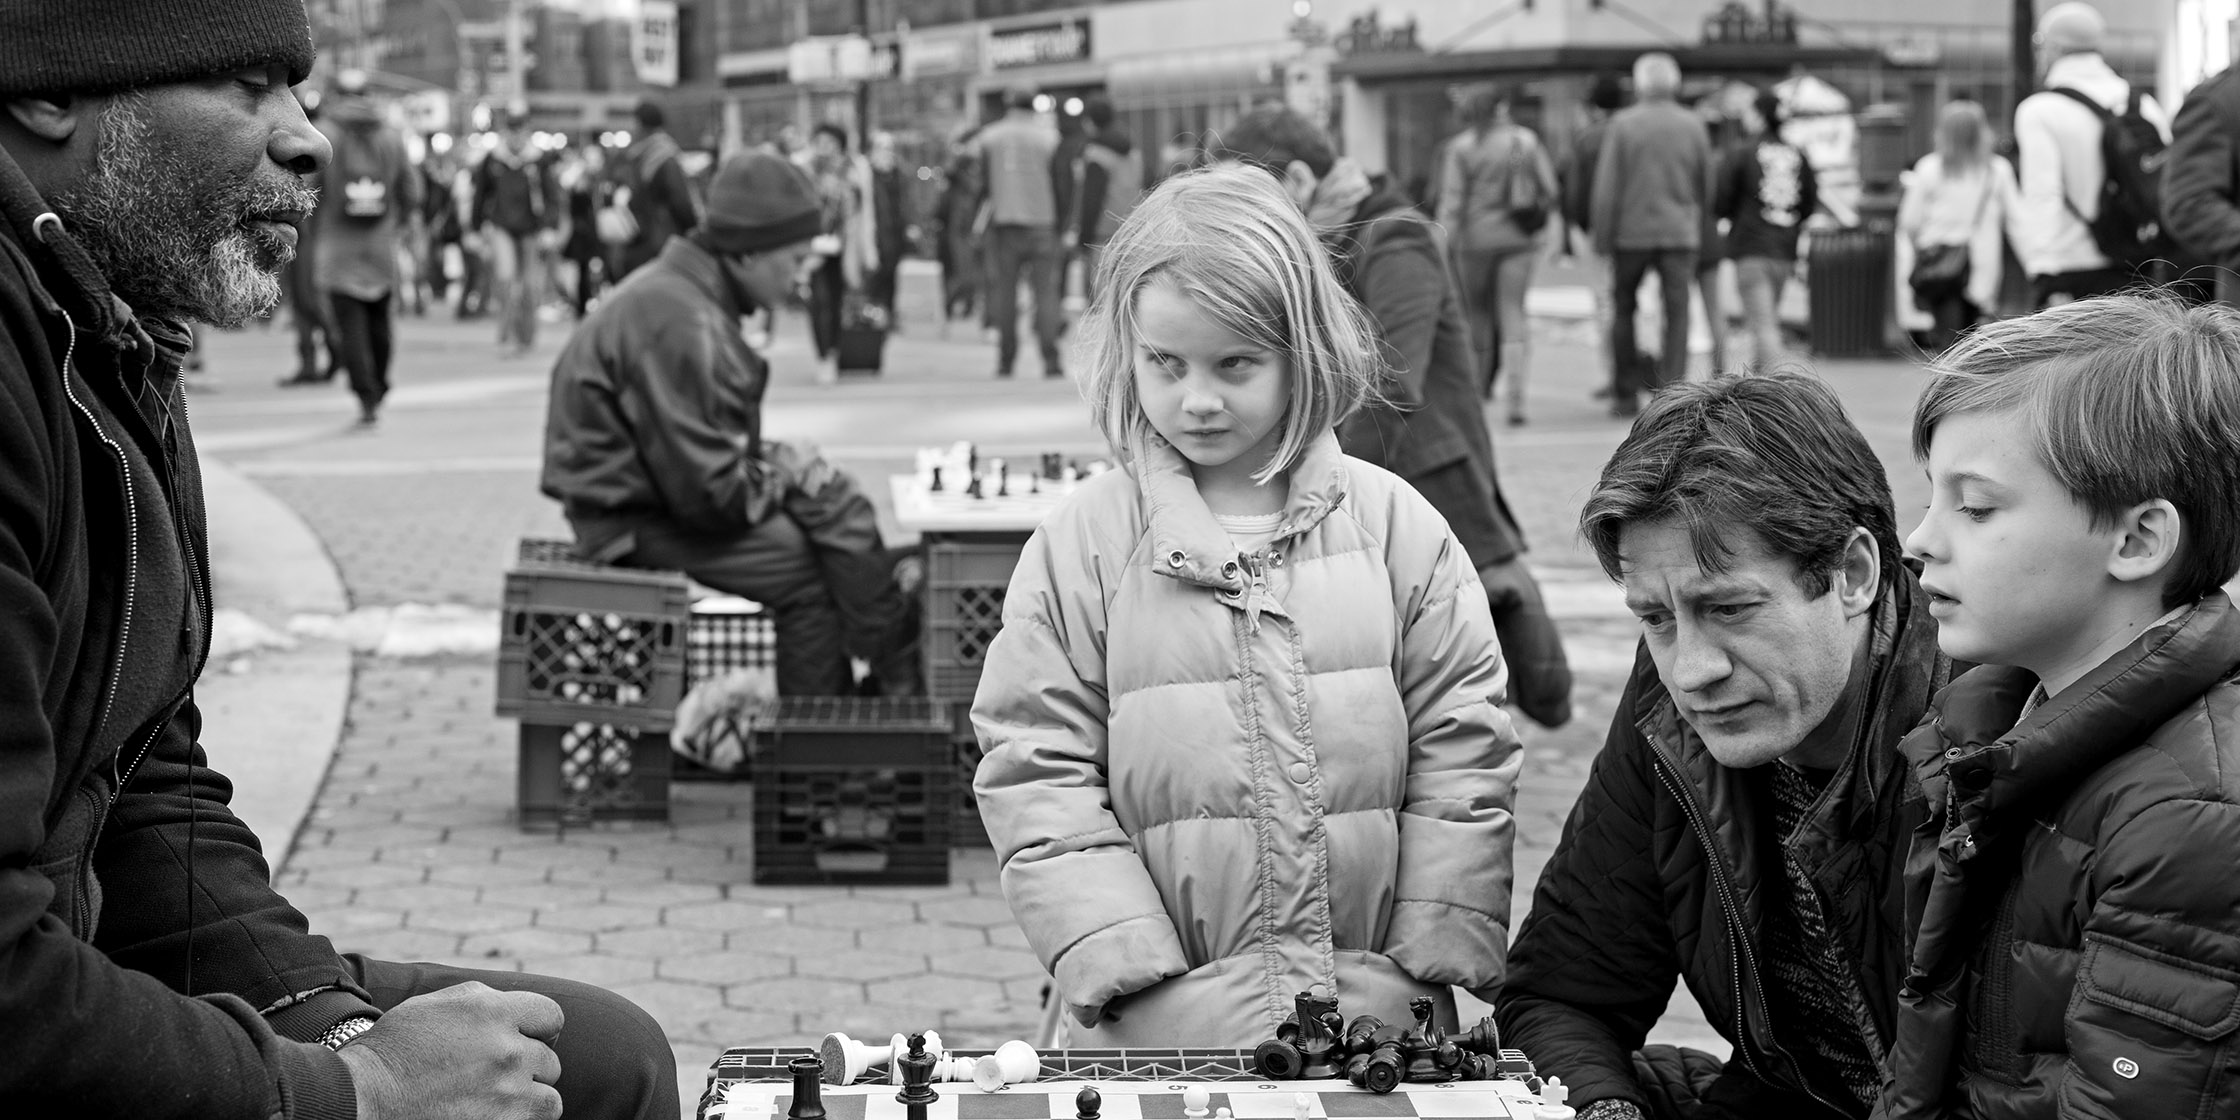 How to… photograph street chess players